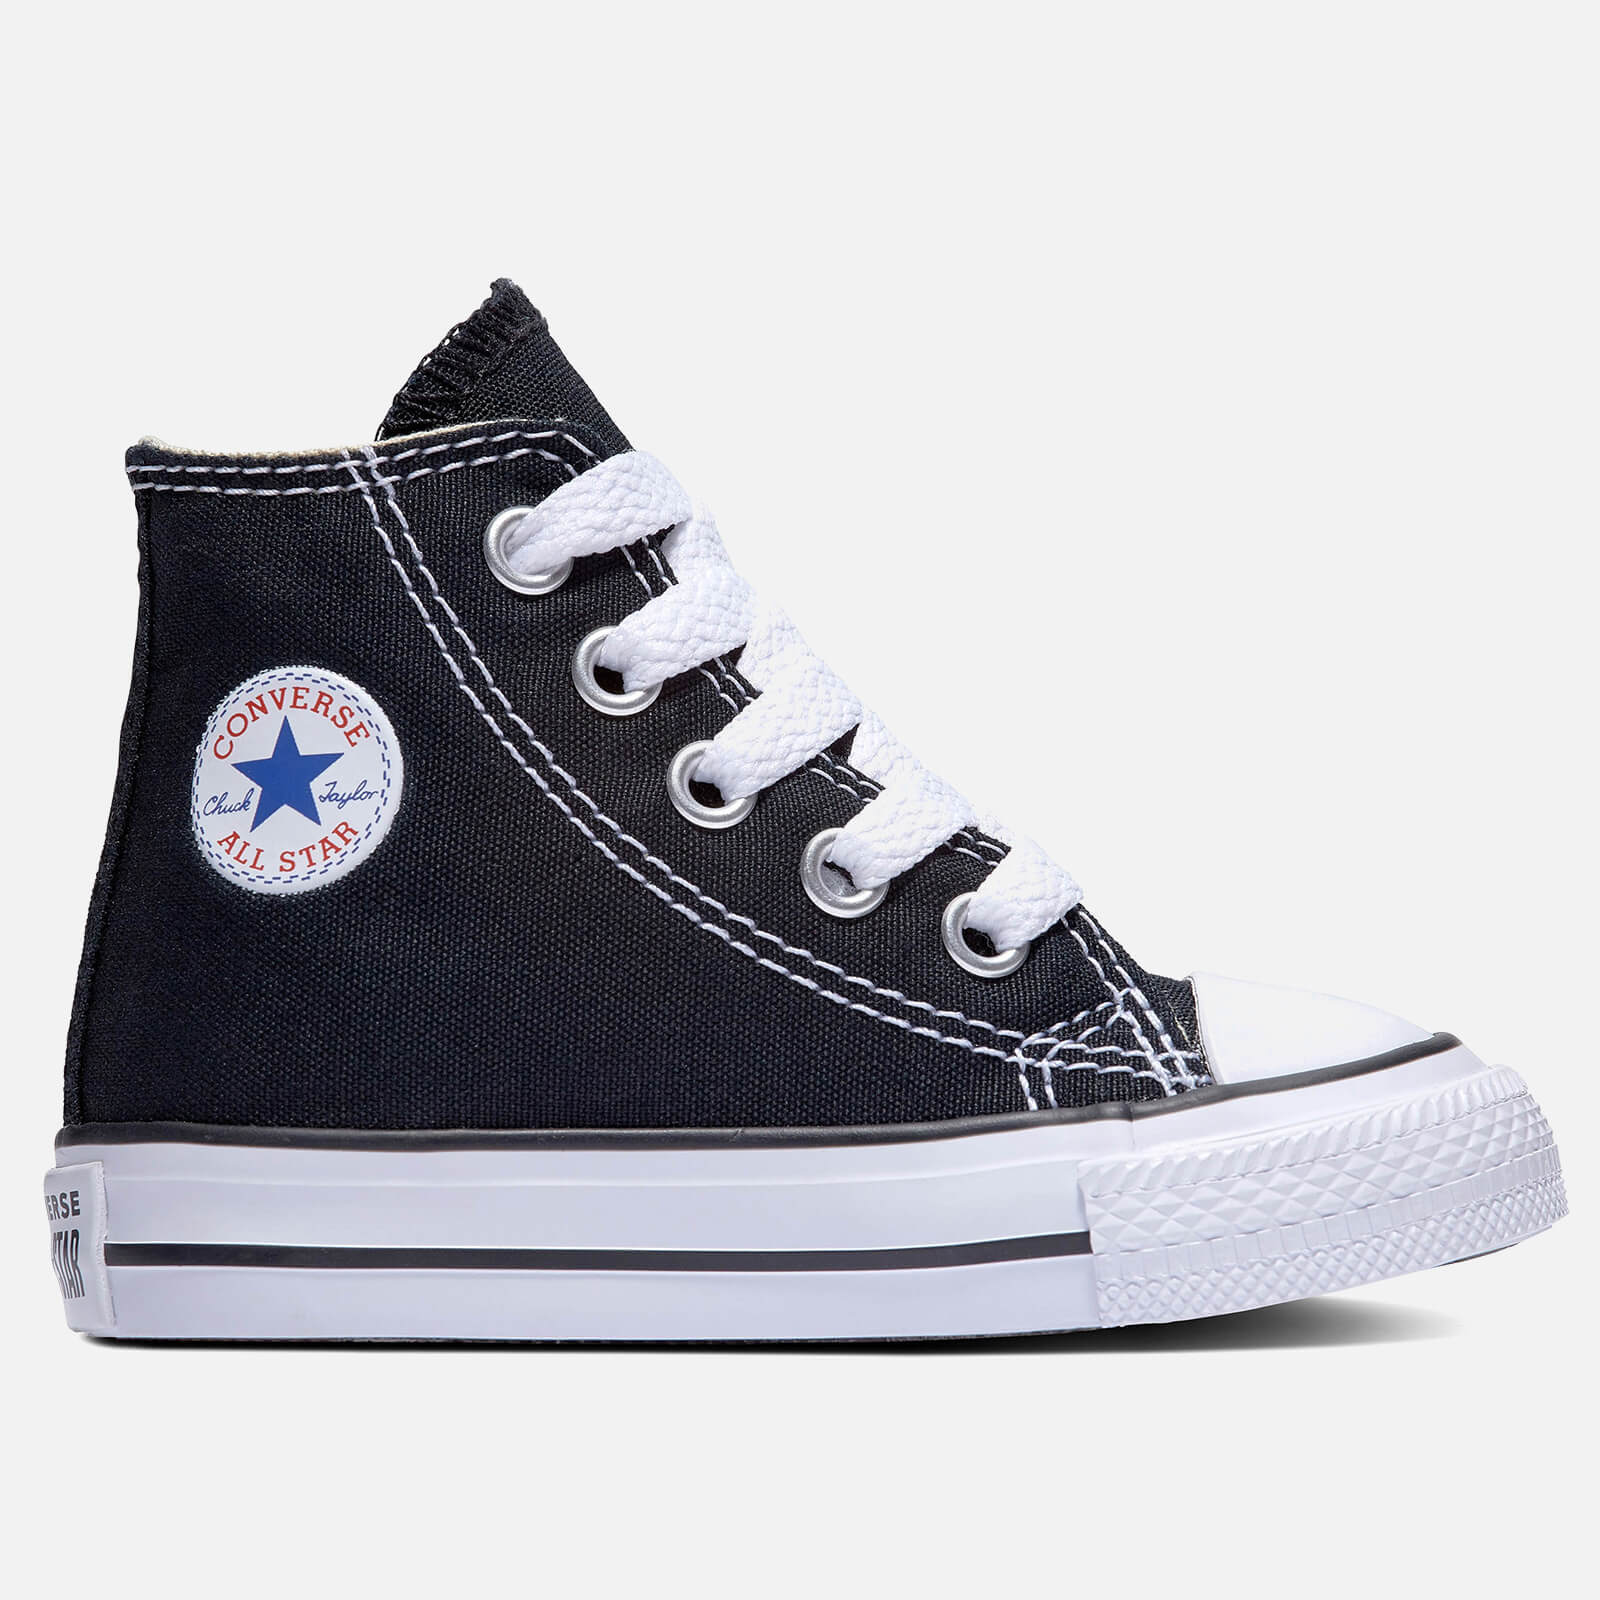 Converse Toddlers Chuck Taylor All Star Hi Top Tainers Black Uk 2 Toddler Black